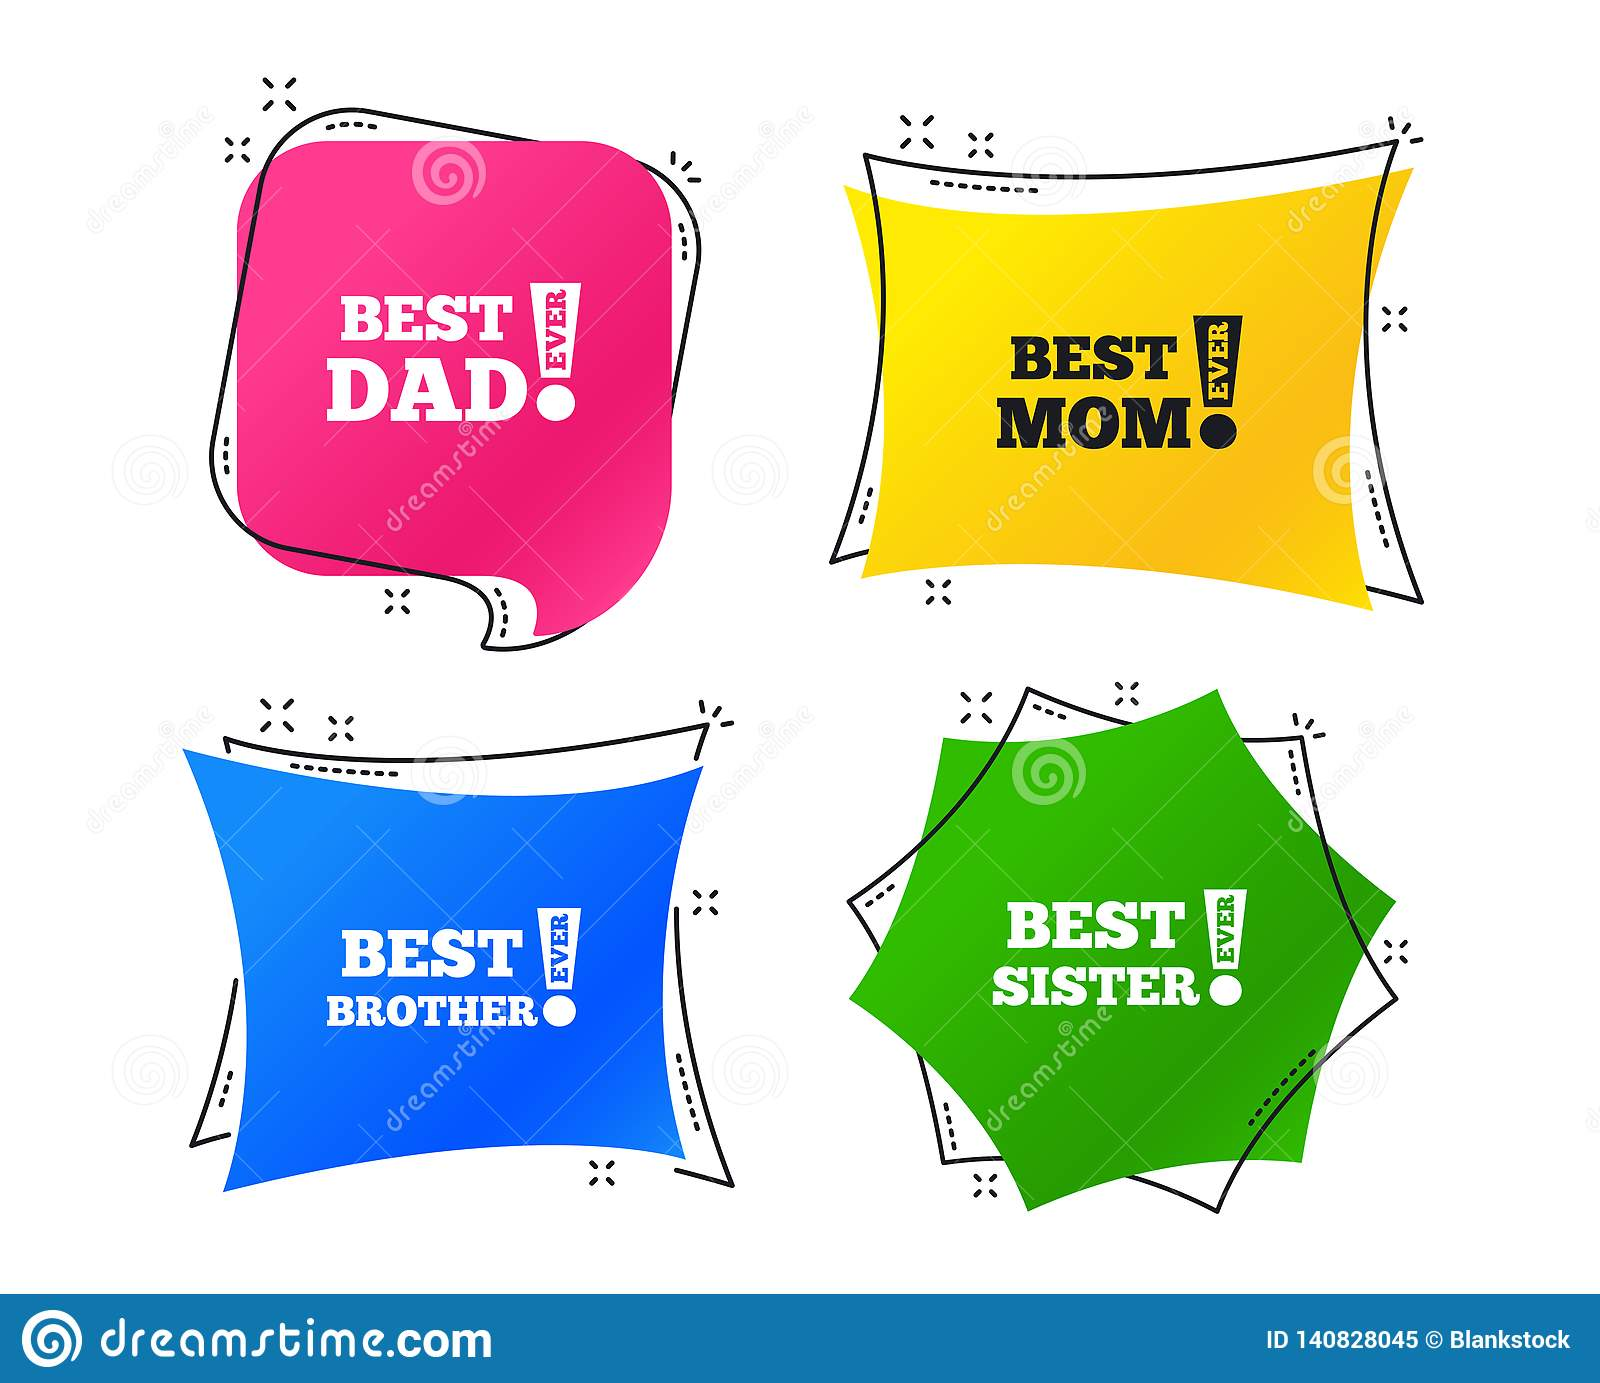 Best mom and dad, brother, sister icons. Vector